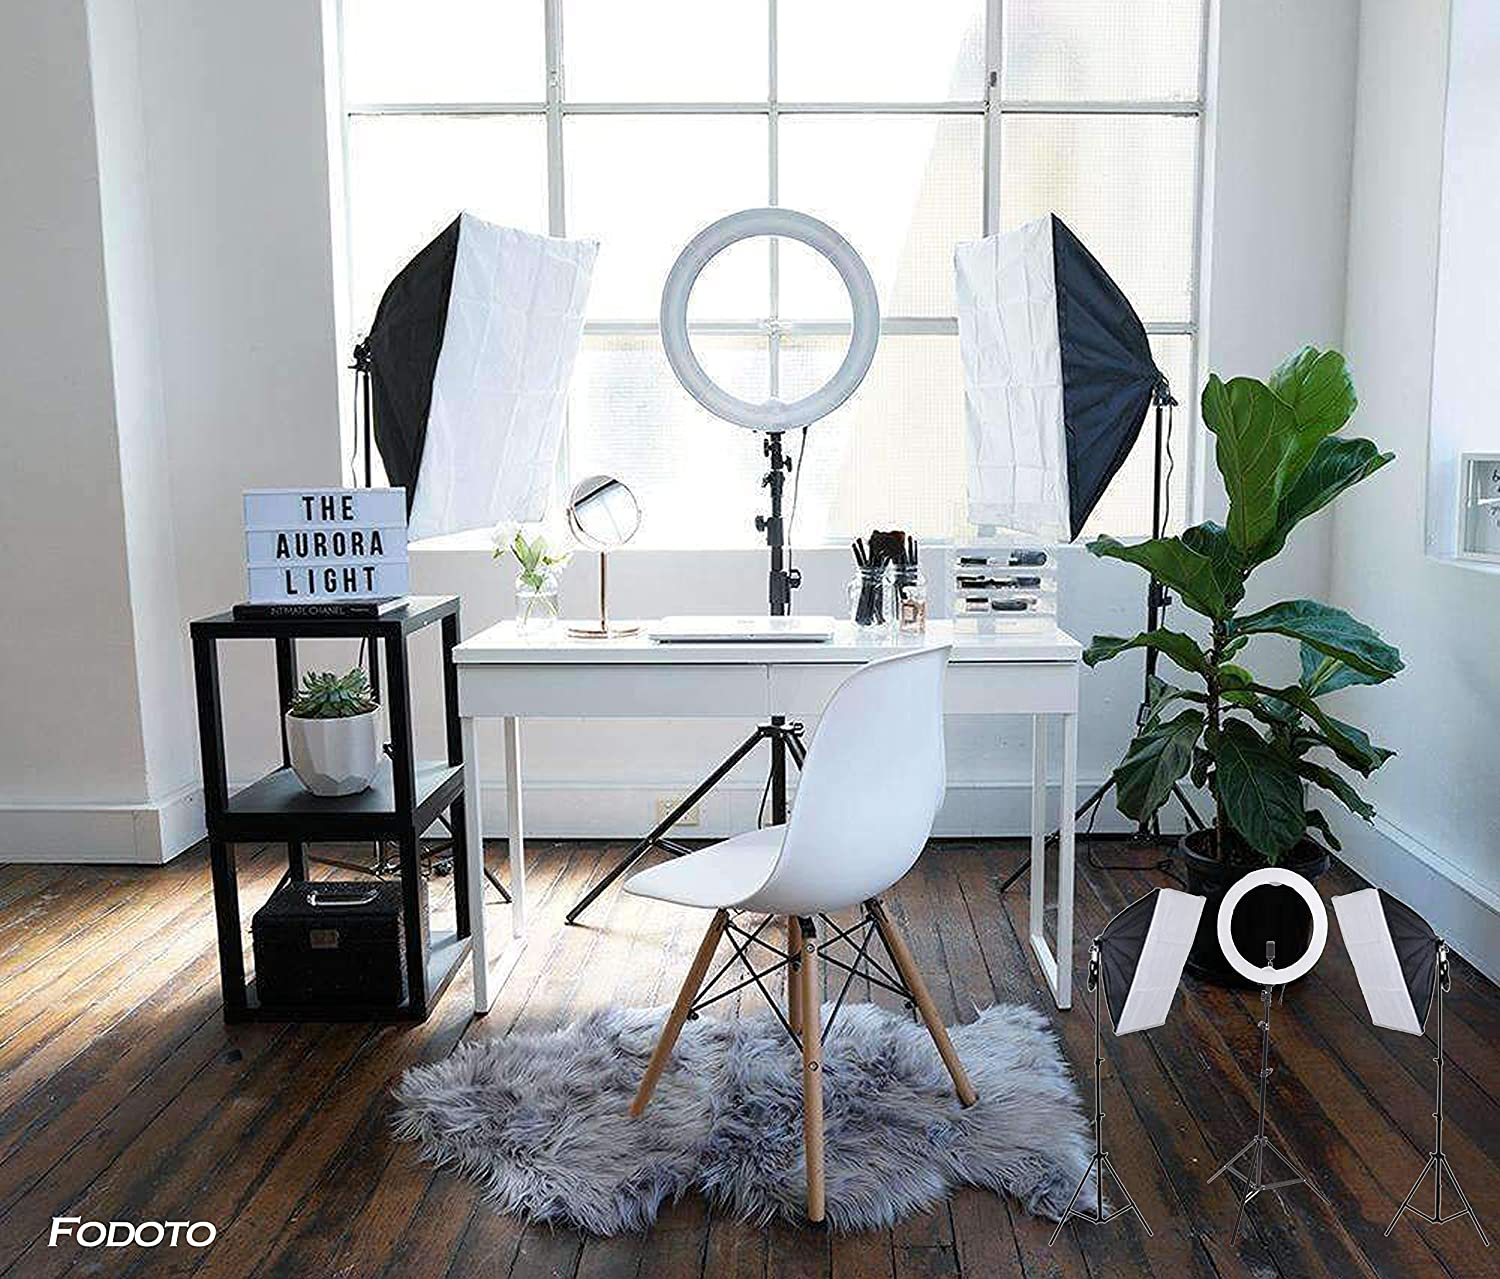 FODOTO 18inch LED Diva Ring Light w/ 900w Photo Video Continuous Softbox Lighting Kit ( The Most Popular Setup Online )